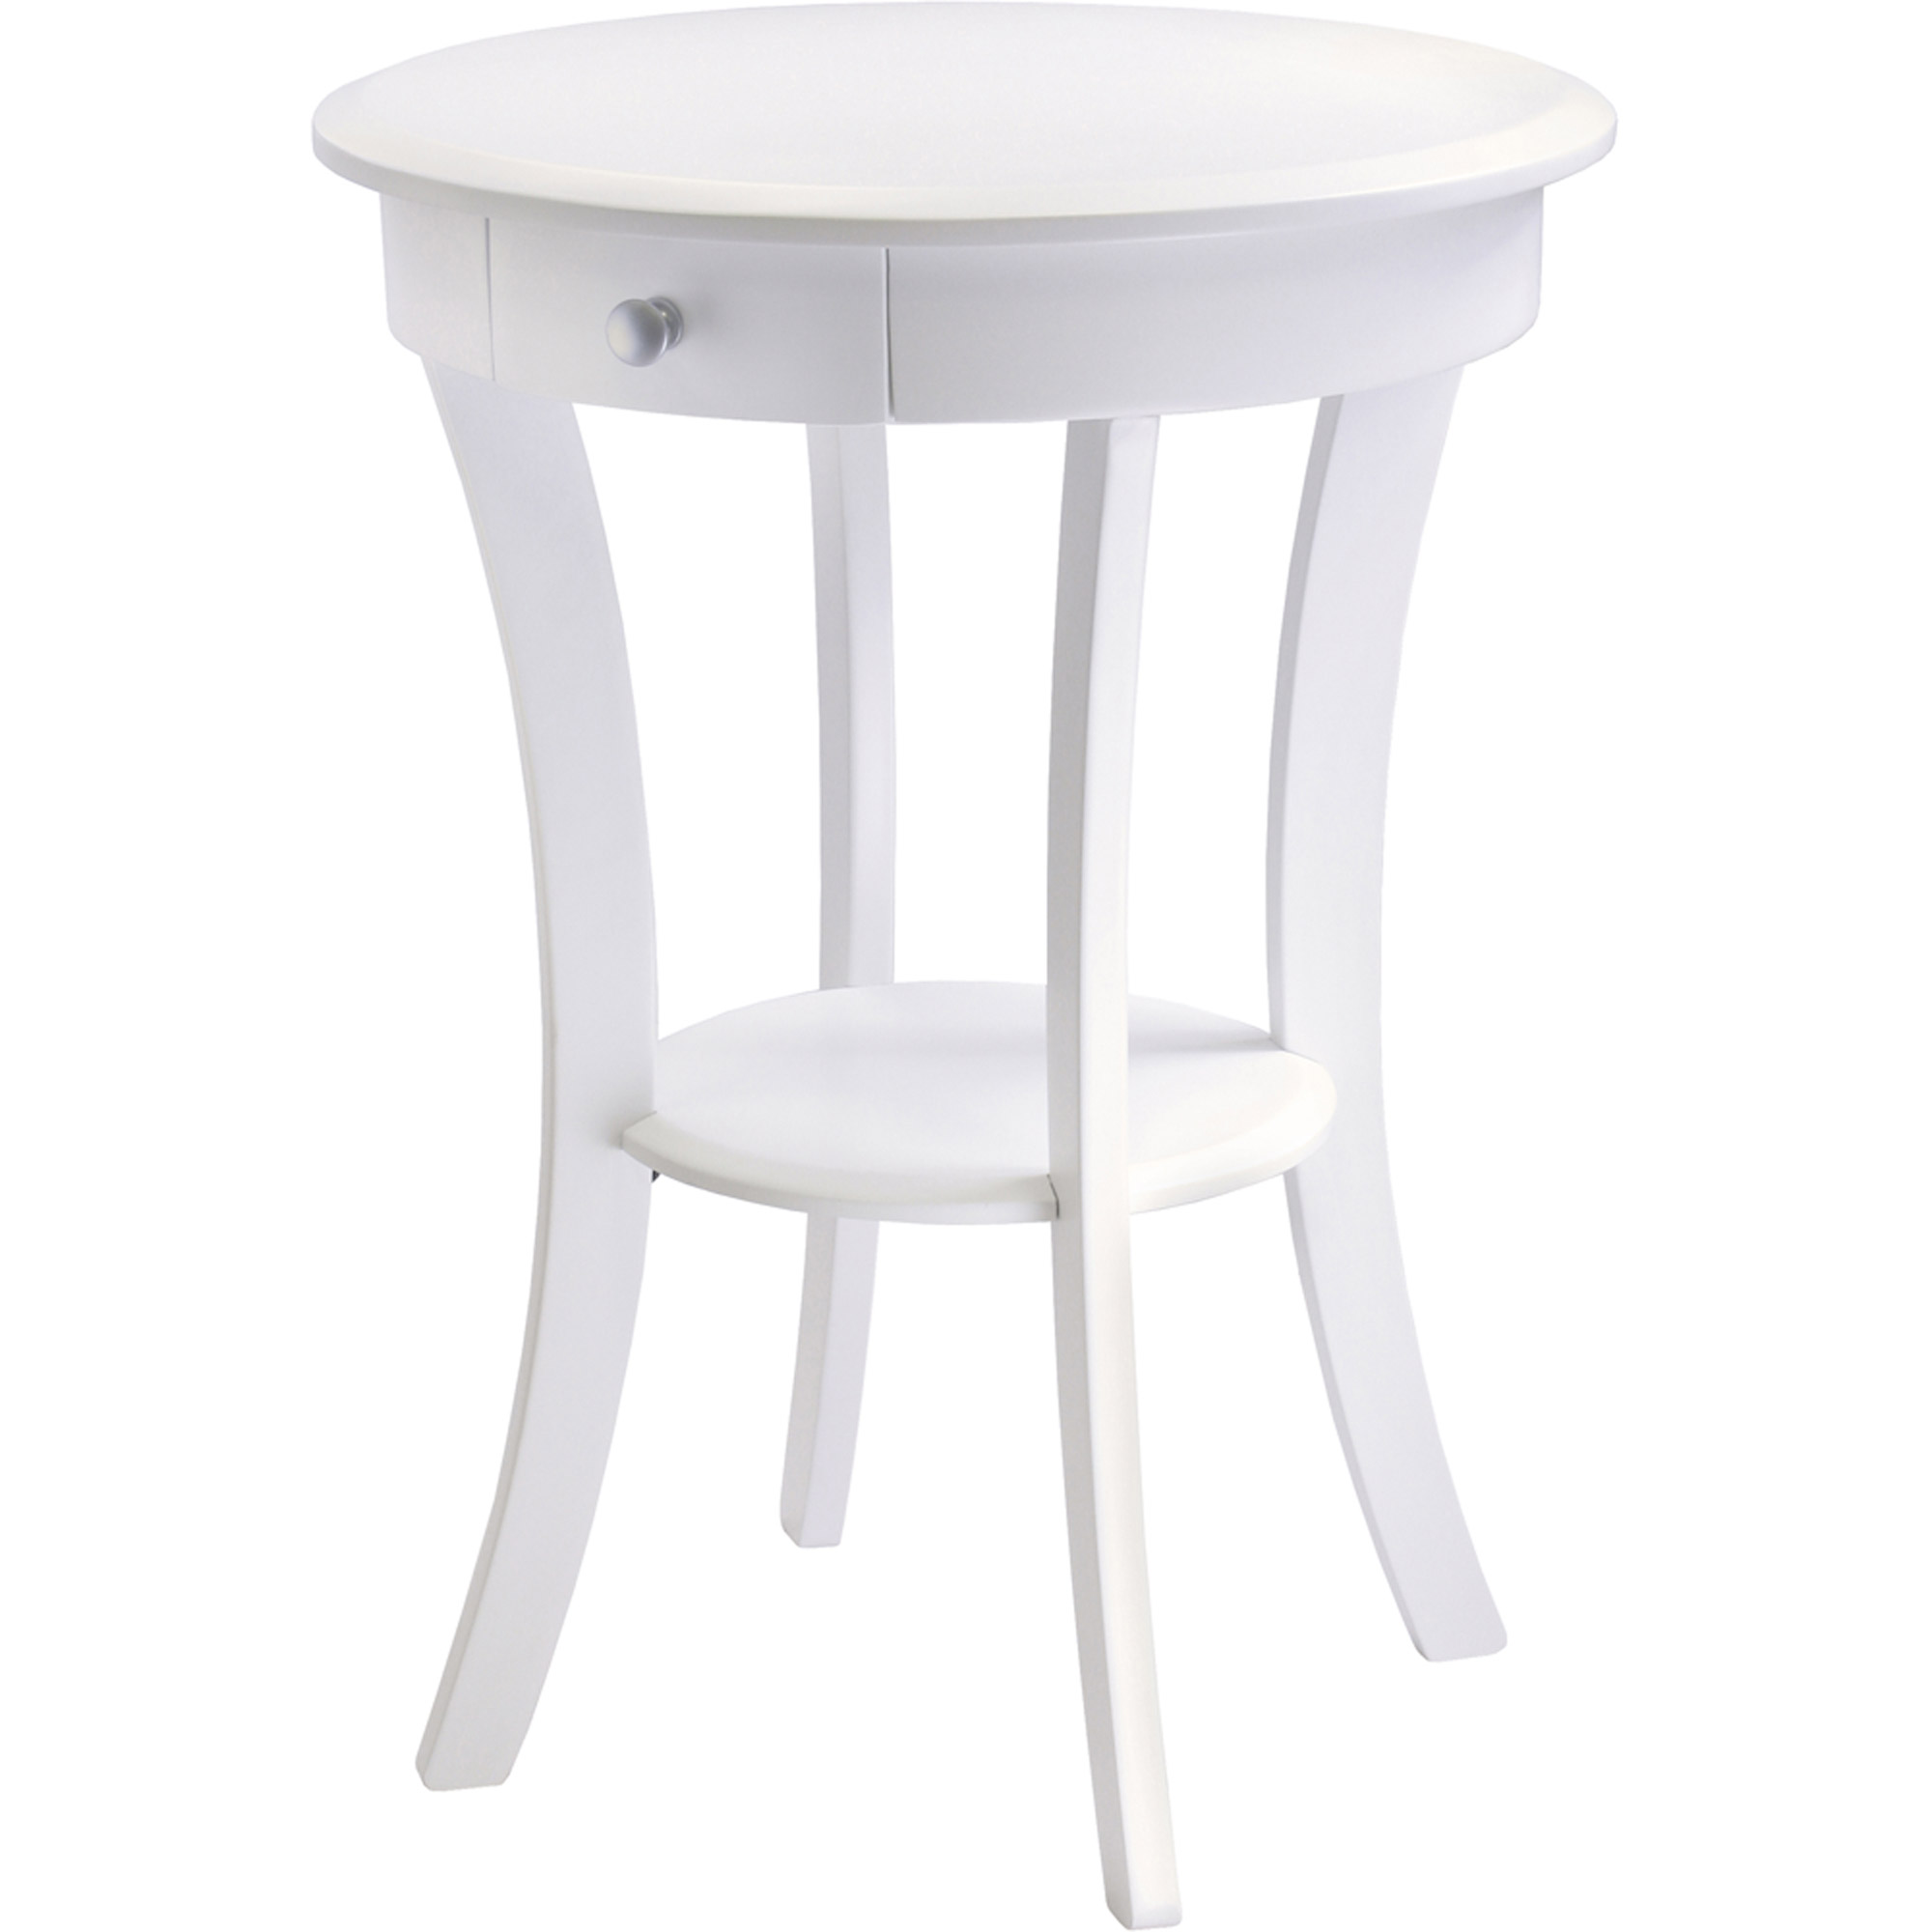 sasha round accent table black end legs beach house decor high top patio with umbrella pottery barn metal side modern coffee drawers kmart furniture bedroom white circle diy